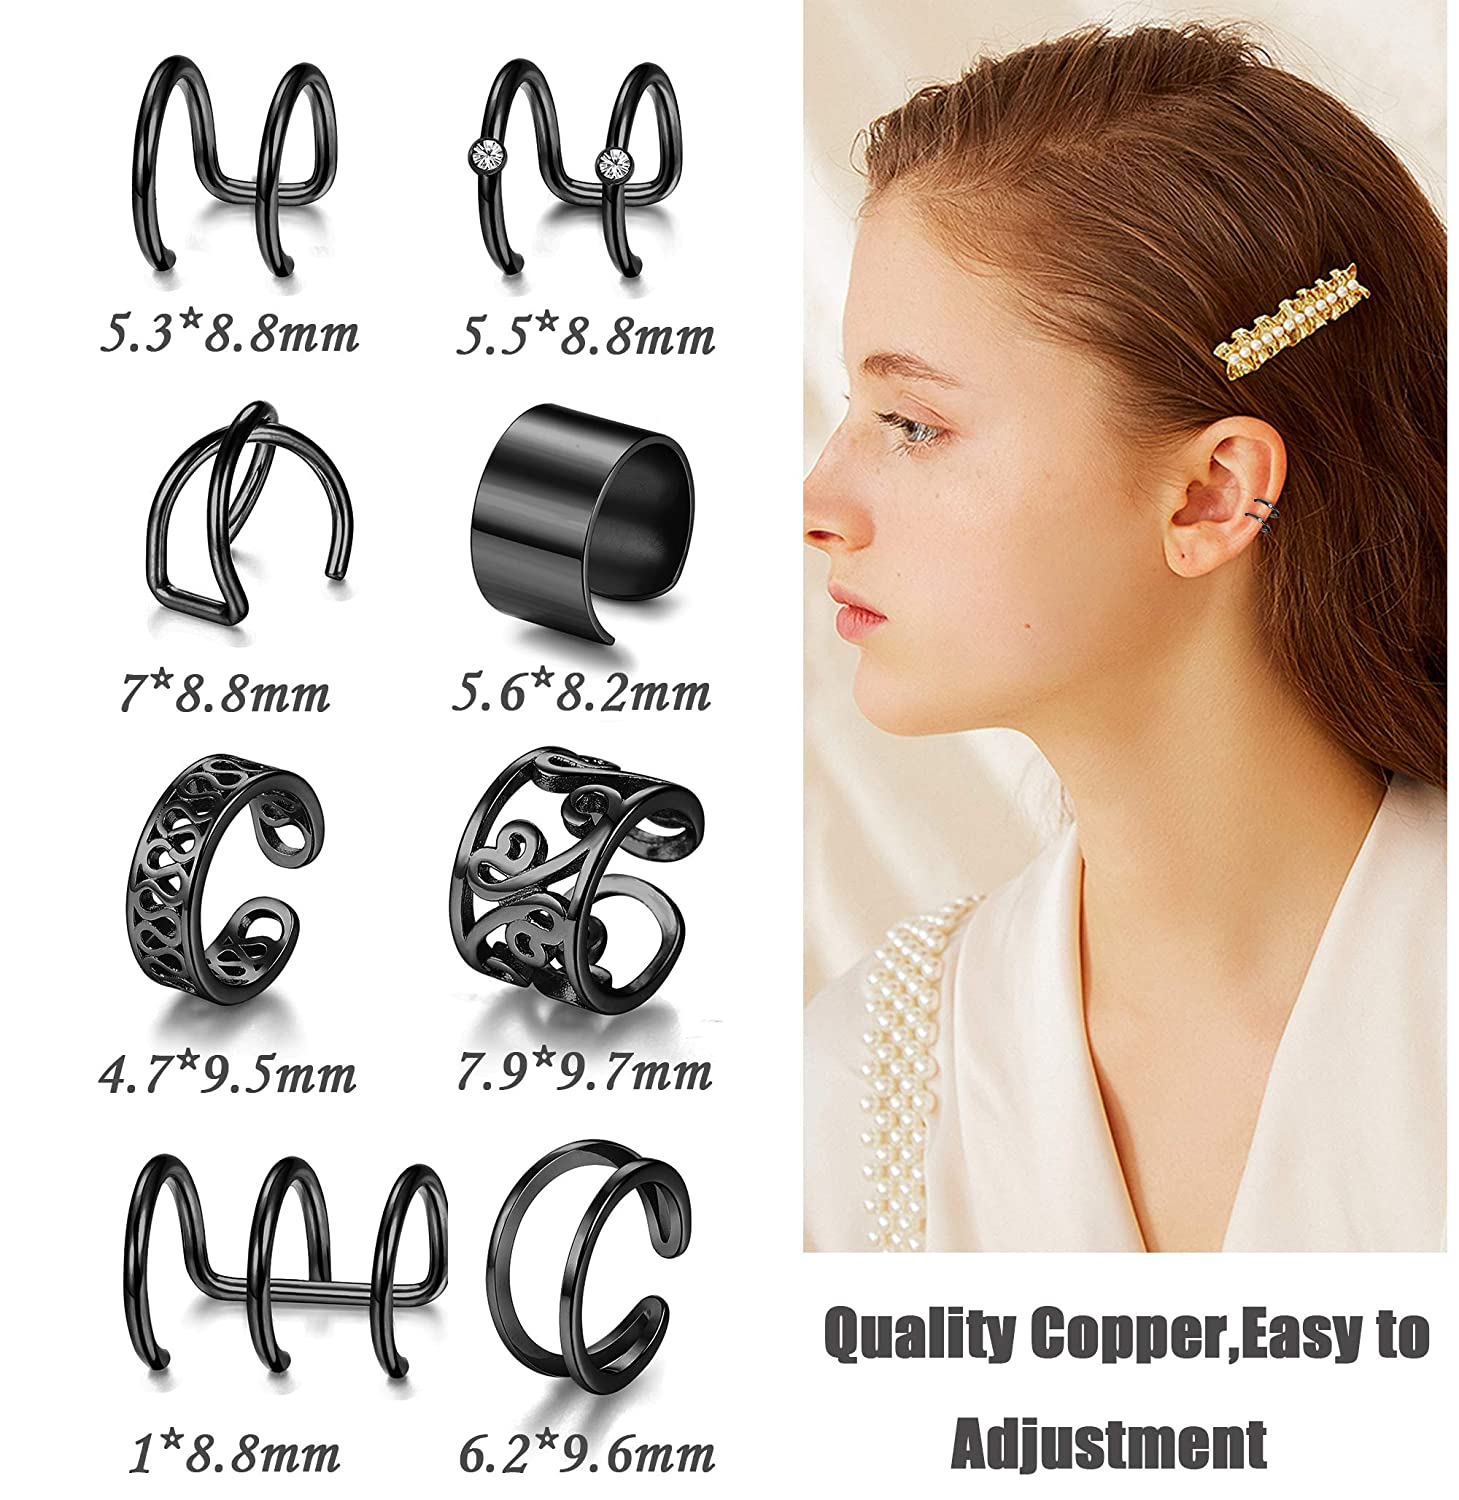 JOERICA Silver Wrap Ear Cuff Earrings Set for Women Girls Clip on Fake Nose Lip Tragus Helix Ring Non-piercing Body Jewelry 8 Pairs JOES37-8PG